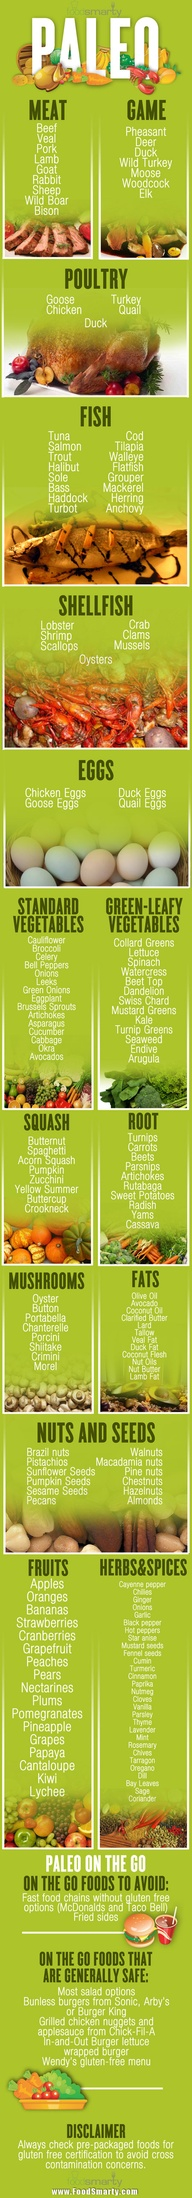 Paleo Diet Info Graphic - Quick Reference Card (Obviously, we do not agree with all that goes along with the Paleo diet. However, God did make these foods for man to live by and man has added all the rest. It is a way of eating to lead to a healthy lifestyle.)